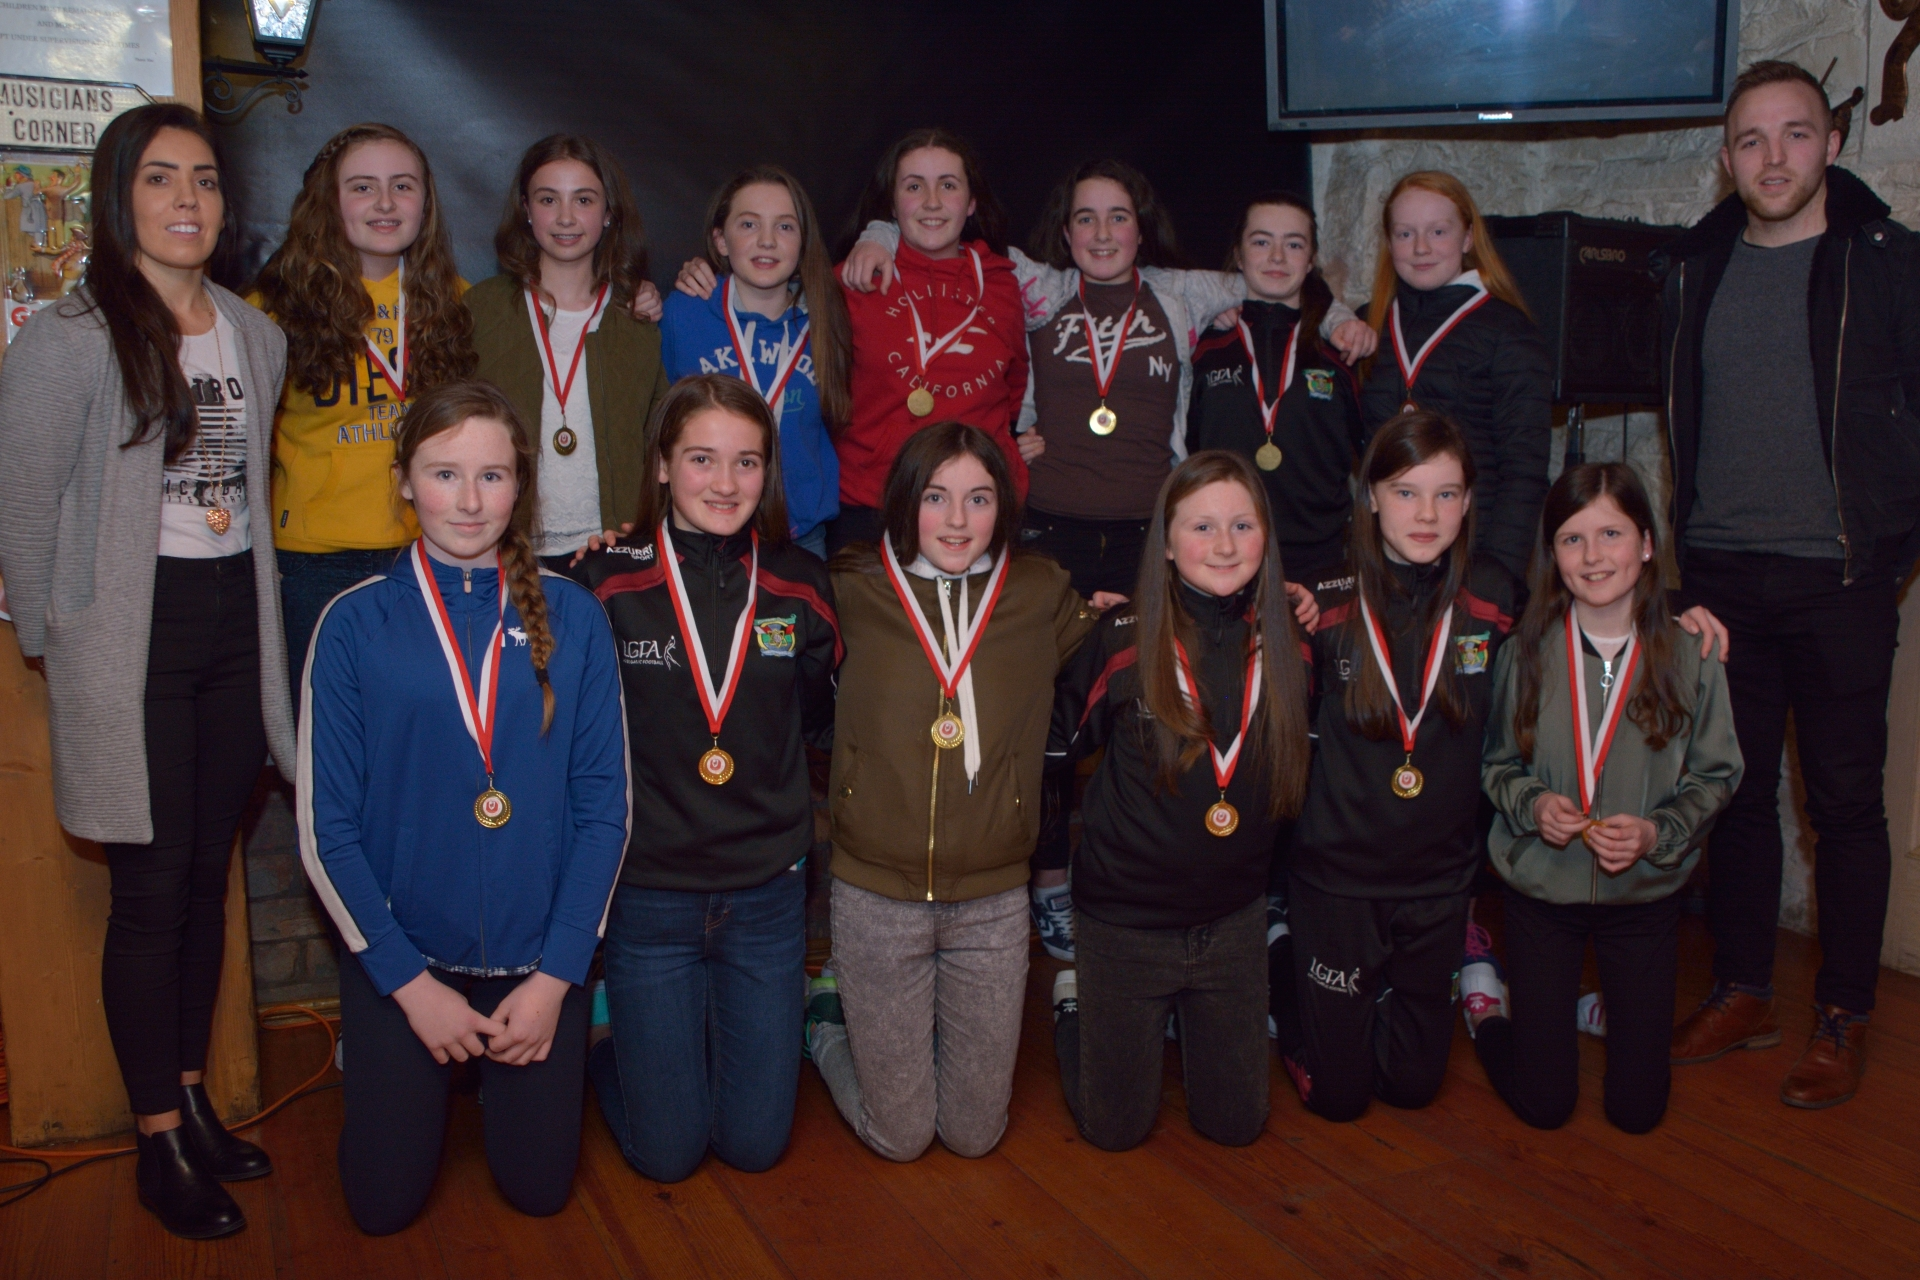 East Kerry Shield Champions, Cromane Under 14 Girls, being presented with their madals by Kerry Senior Players Sarah Houlihan & Darran O'Sullivan